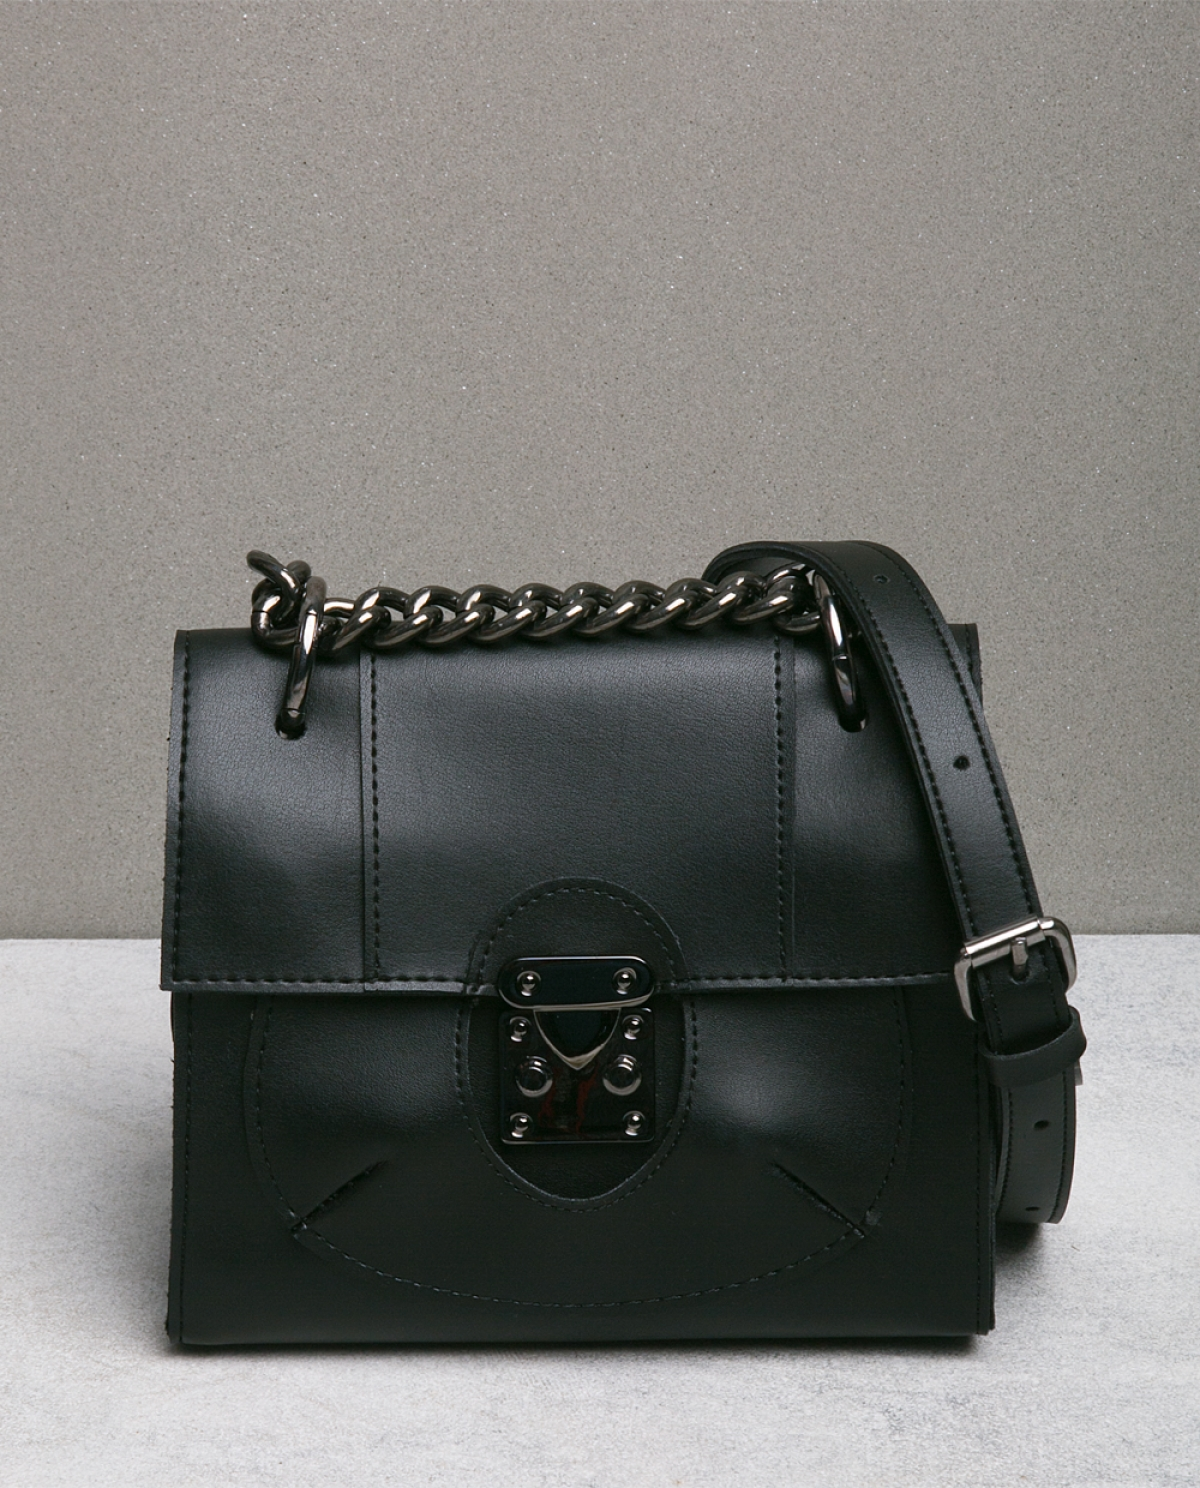 LADY Black Leather Shoulder Bag